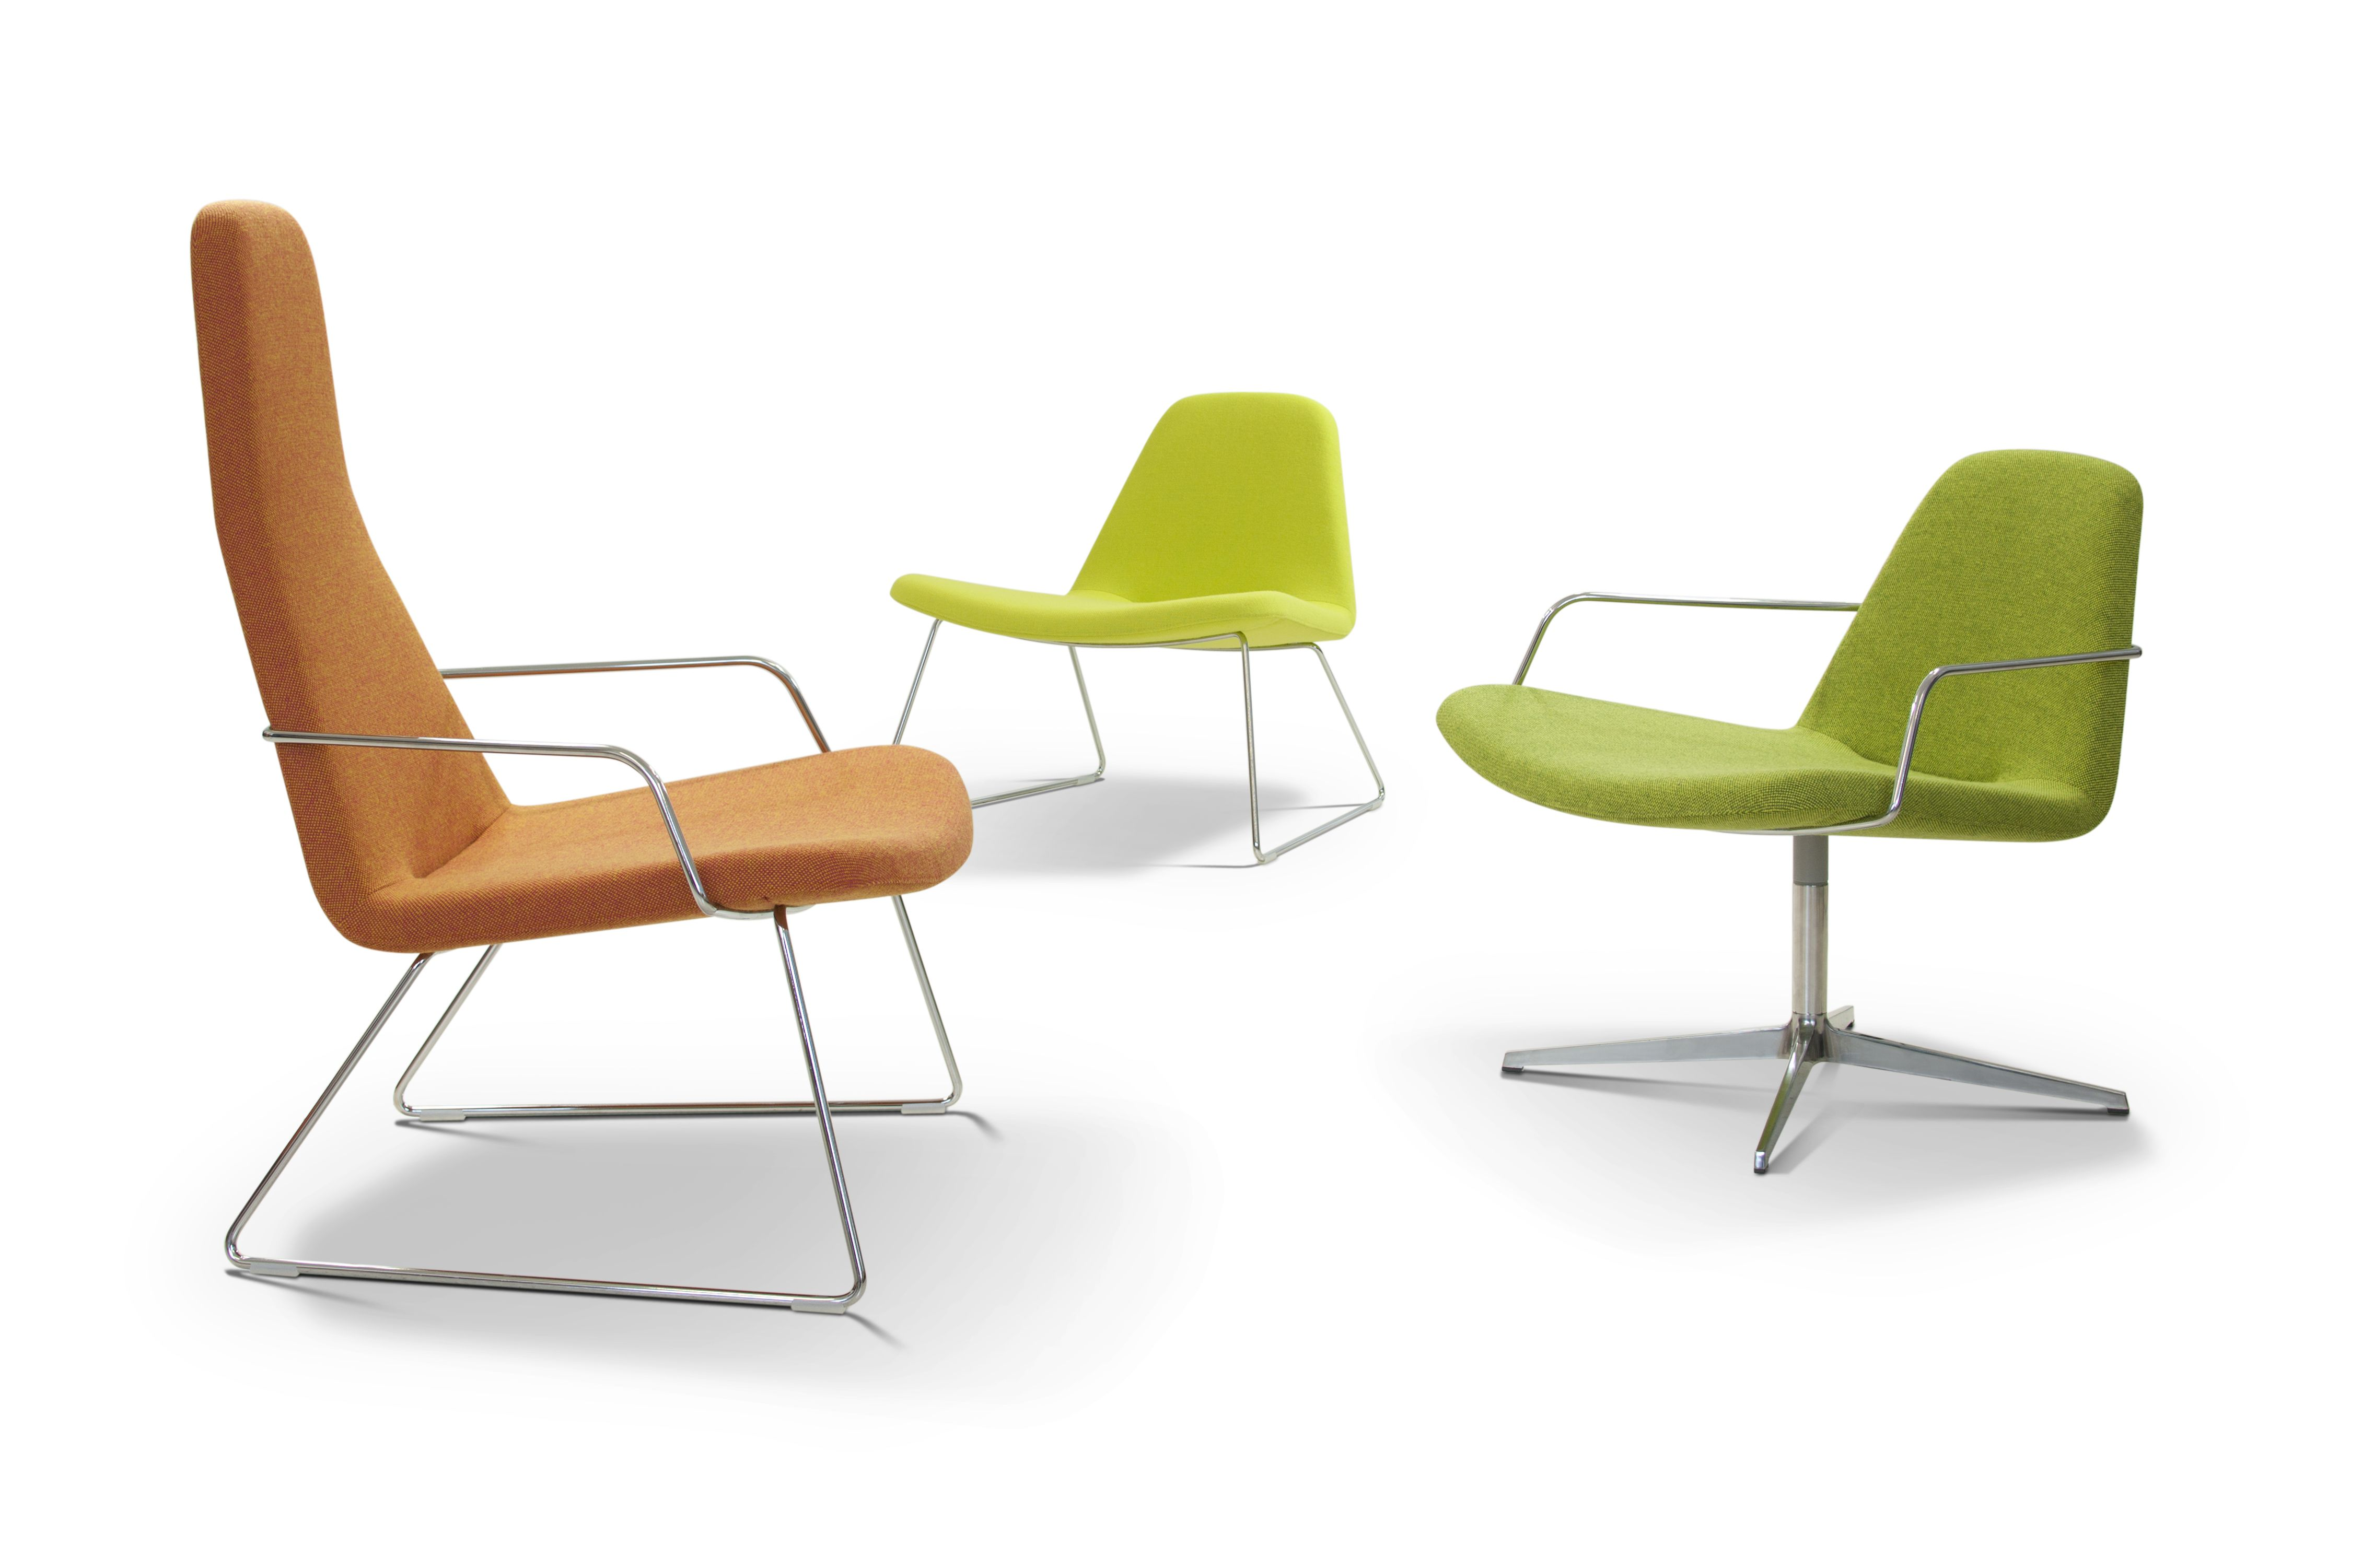 Hitch mylius hm59 lounge chairs designed by matthias